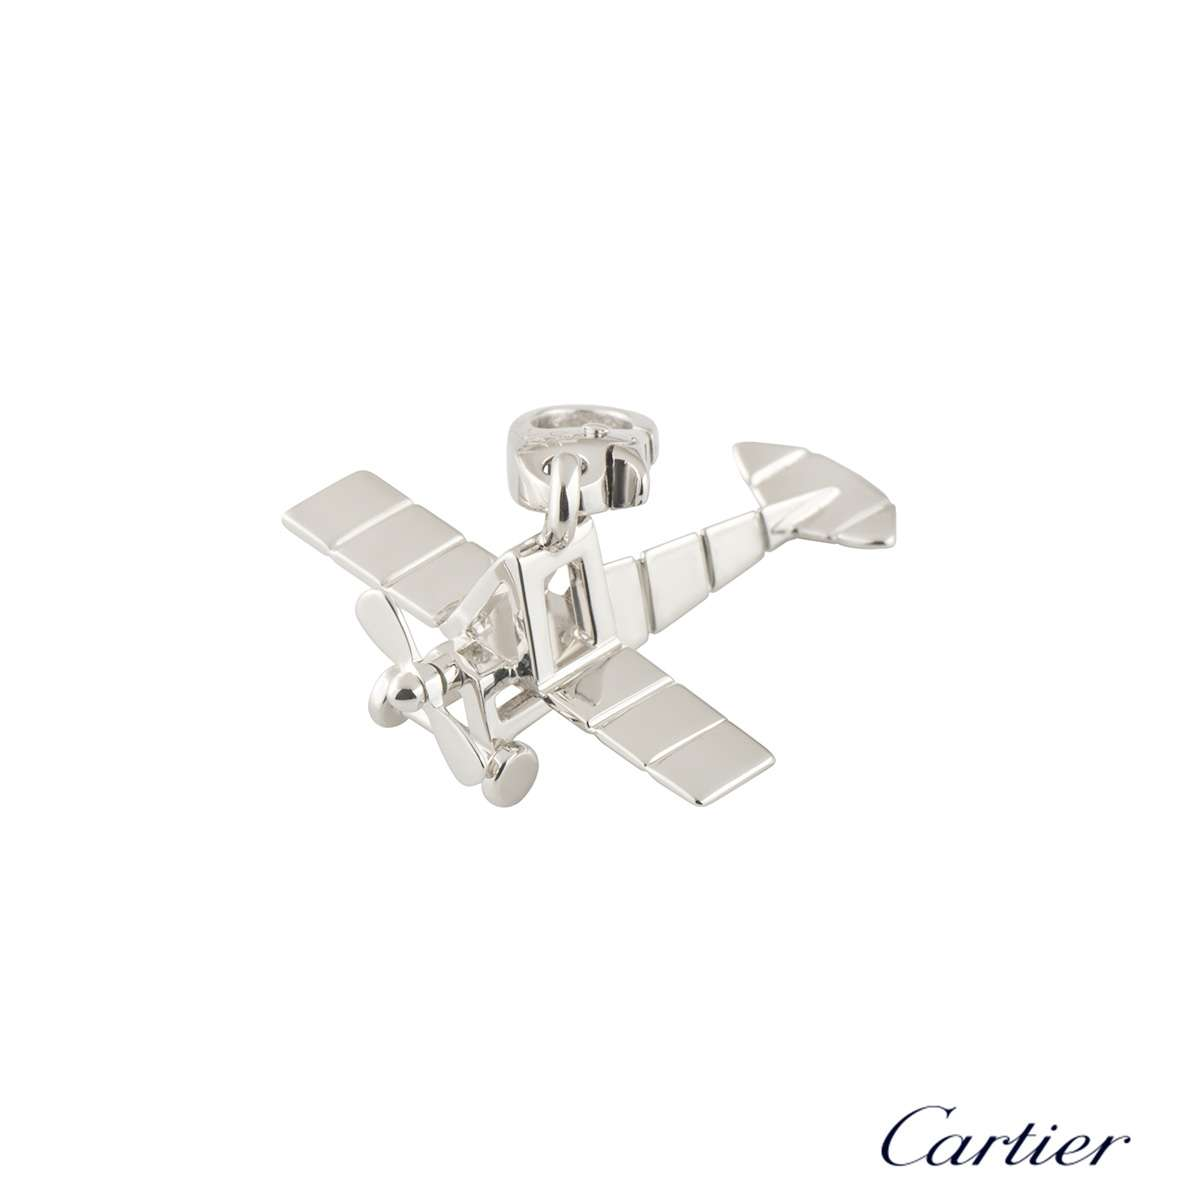 Cartier White Gold Airplane Charm